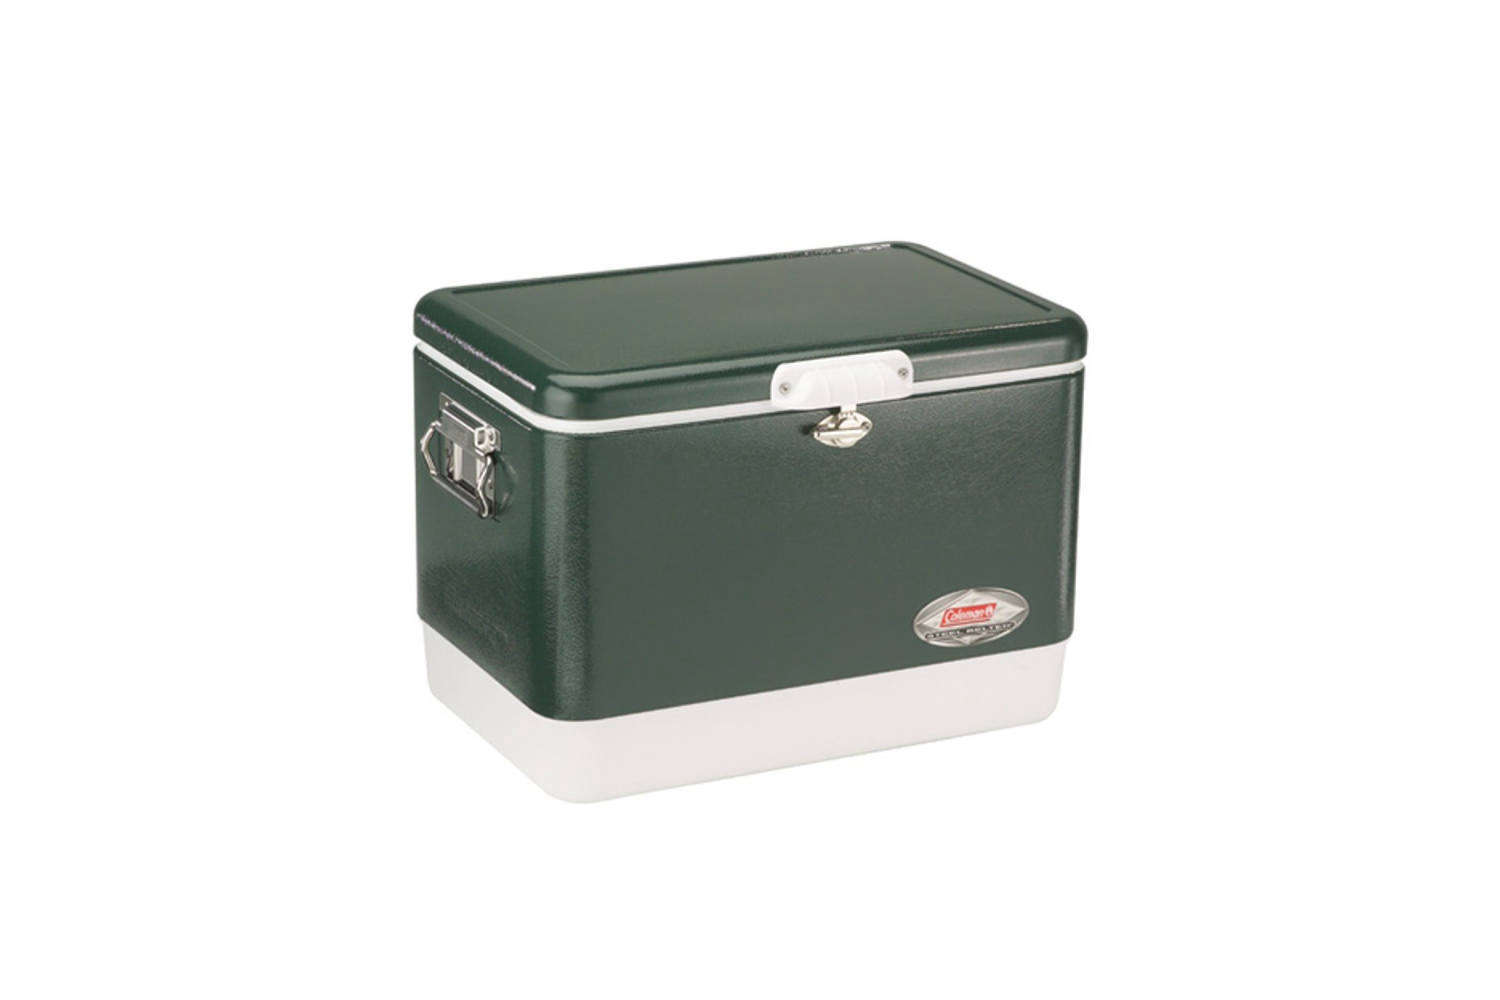 Steal This Look A Stylish Camp Kitchen in a Plywood Summer Cabin The Coleman 54 Quart Steel Belted Cooler is \$94.99 at Amazon.